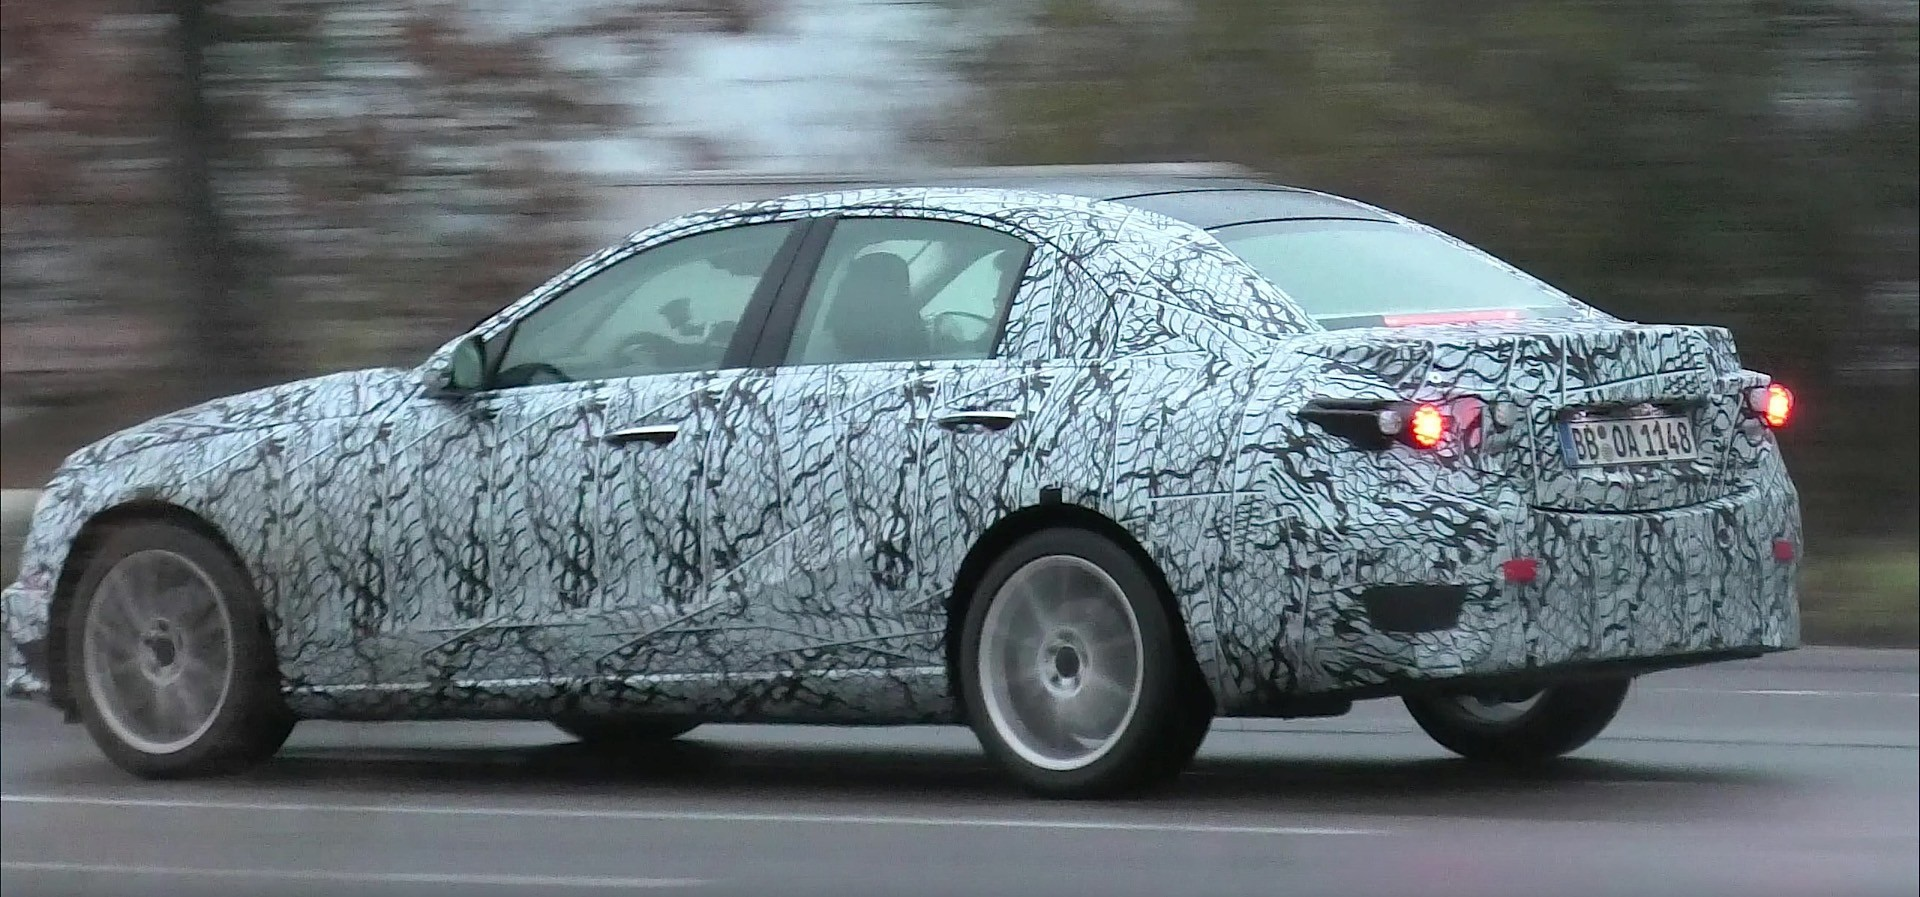 2021 Mercedes-Benz C-Class W206 Prototype Shares No ...